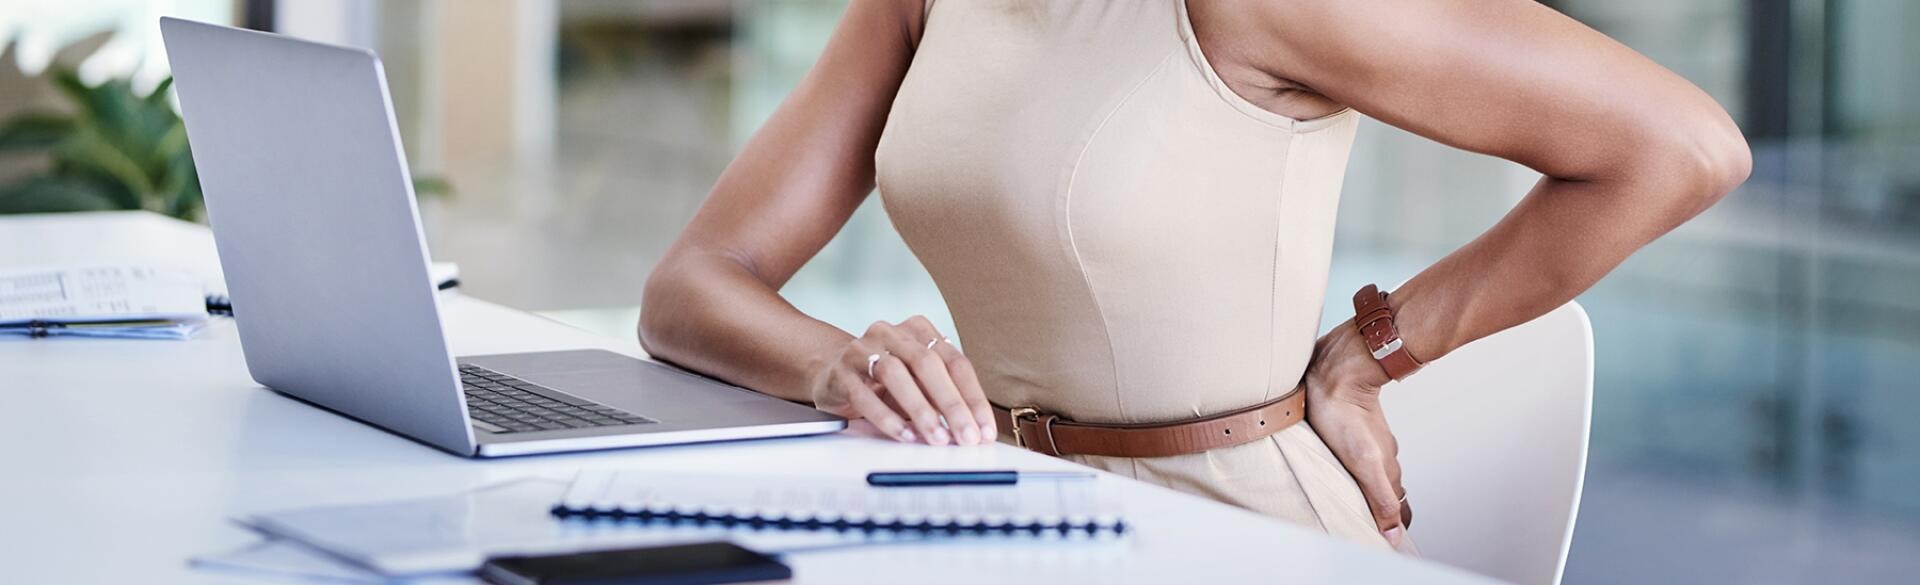 image_of_woman_at_desk_wincing_in_pain_touching_lower_back_GettyImages-1140355942_1800